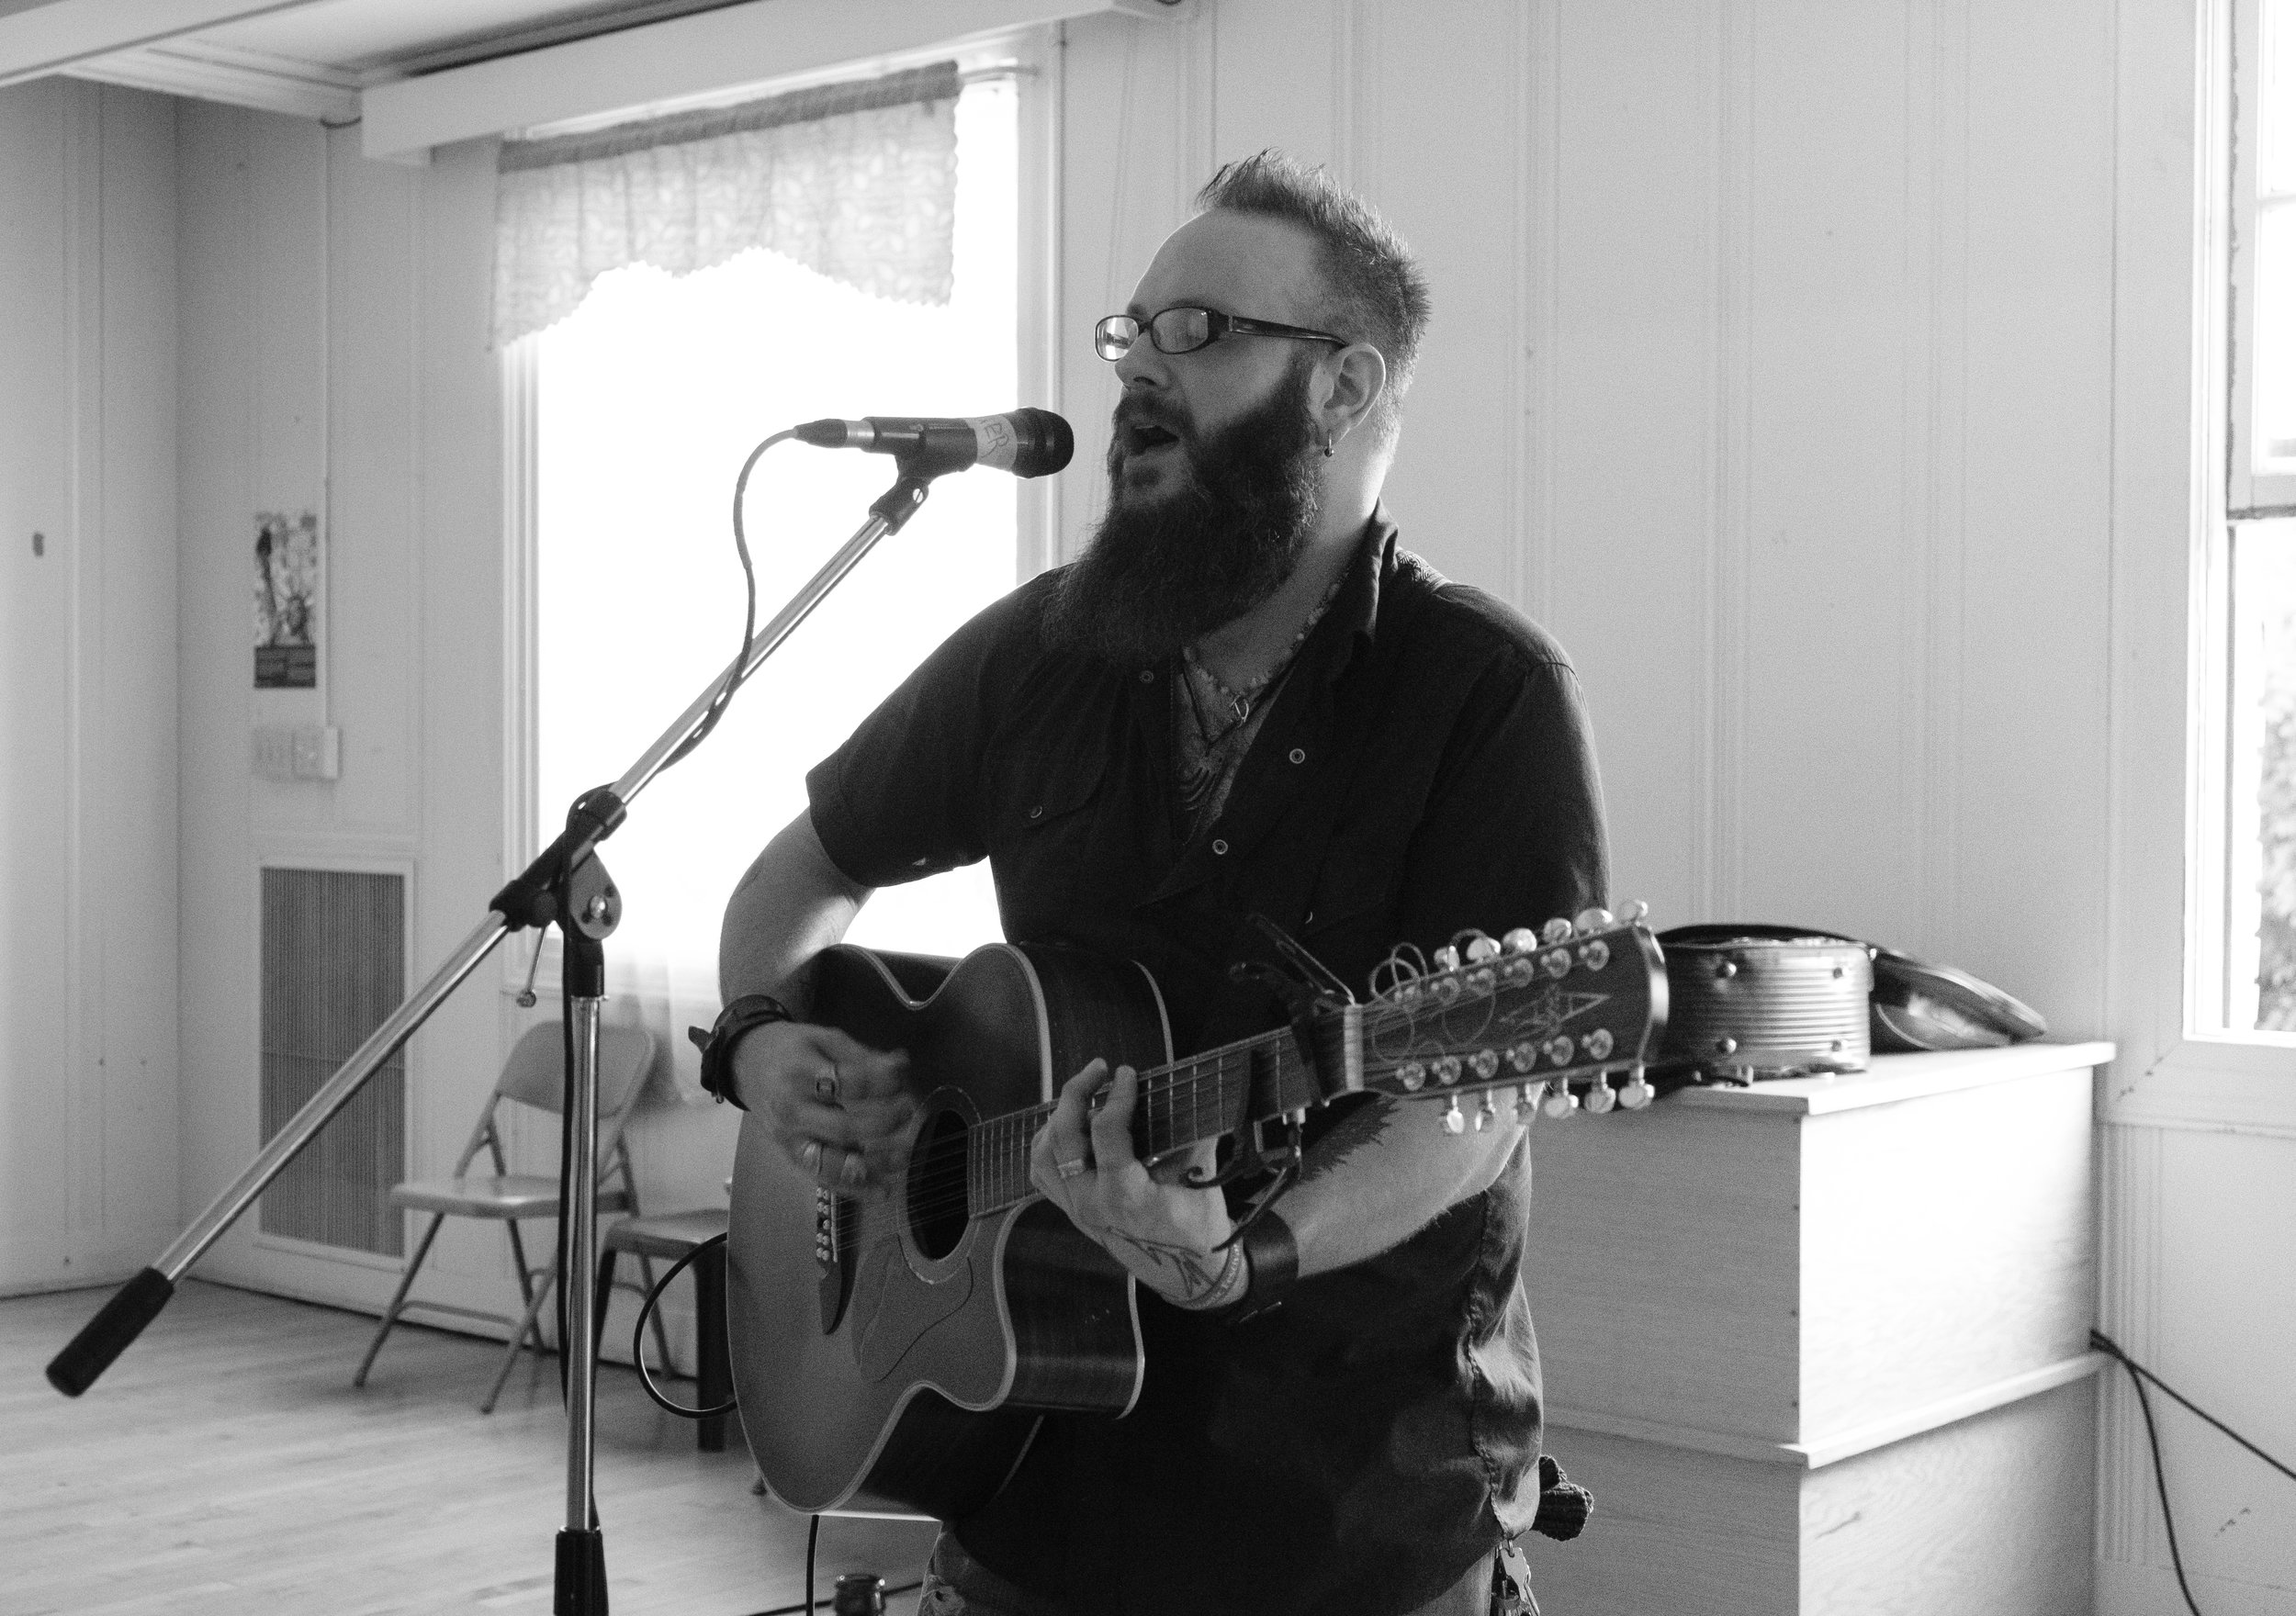 Paul Mauer, Fellowship Hall, Seattle Acoustic Festival, August 2017.